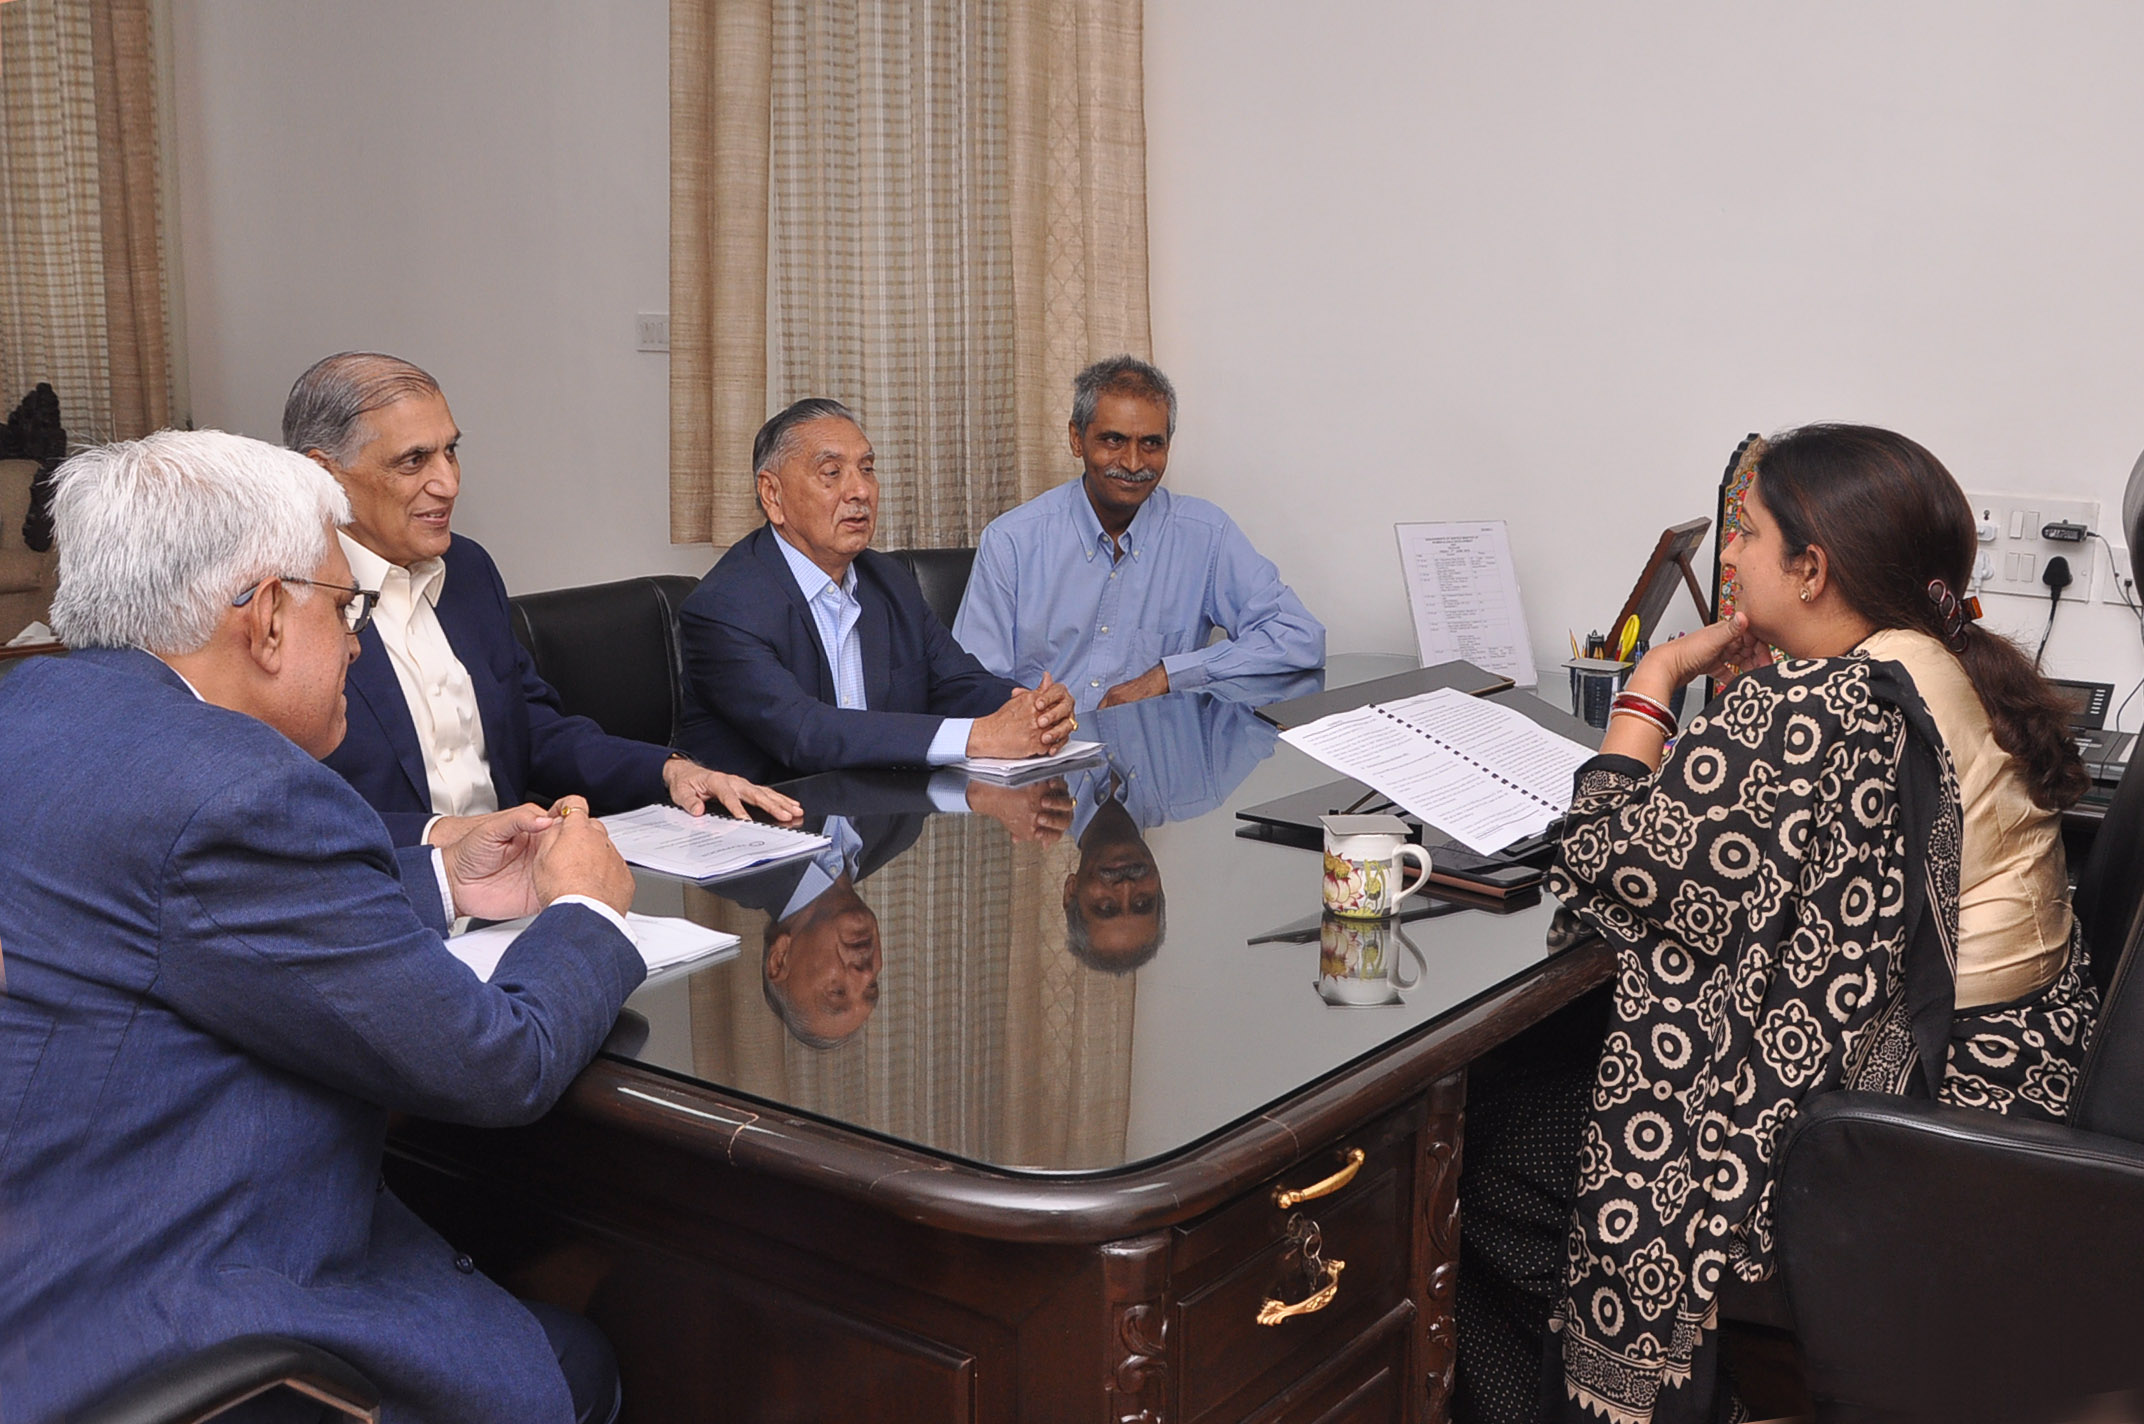 TEXPROCIL Delegation meets Hon'ble Minister of Textiles at her office in New Delhi on June 7, 2019.